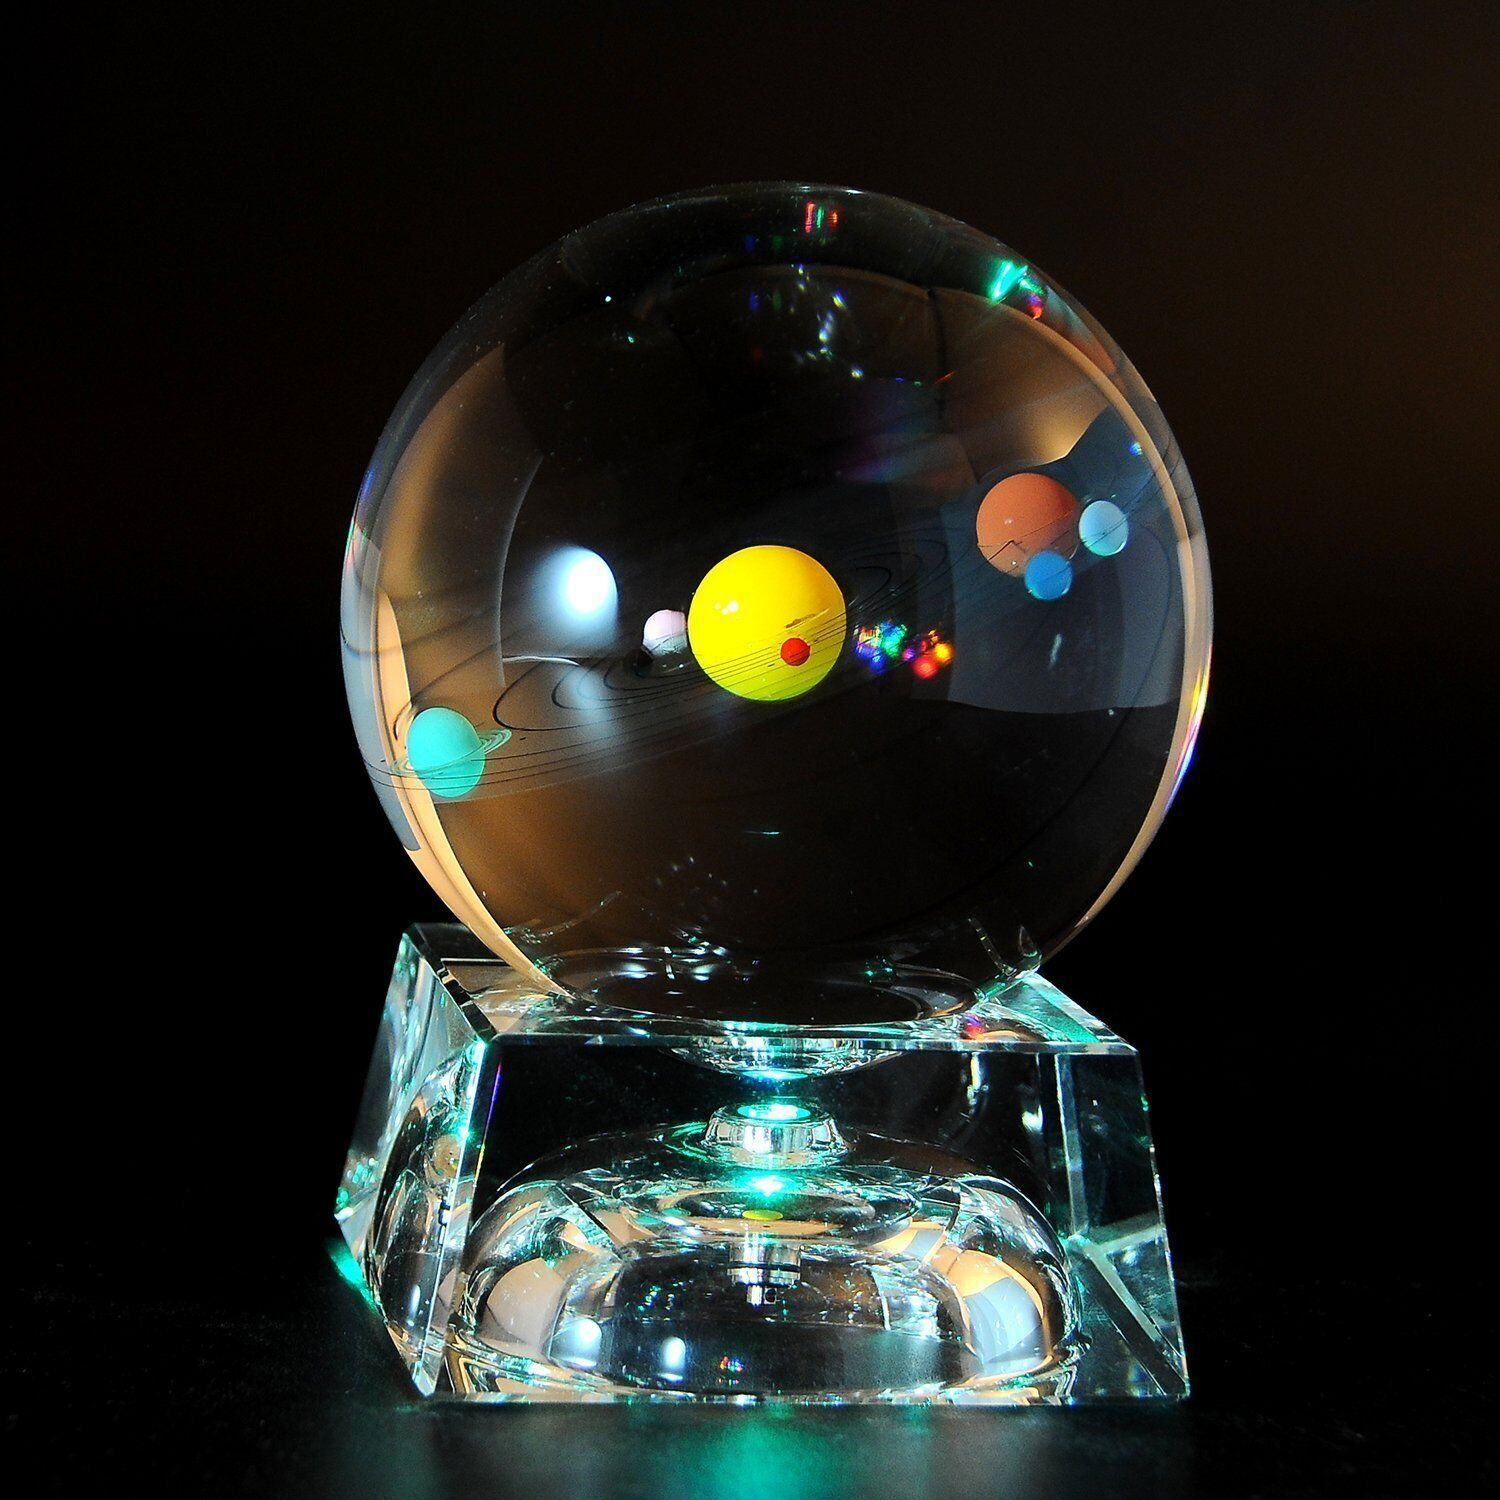 Solar System 3d Crystal Ball With Led Lamp Base Clear 80mm 3 15 Inch Glass Sphere Be In 2020 Birthday Gifts For Kids Presents For Boyfriend Birthday Presents For Mom